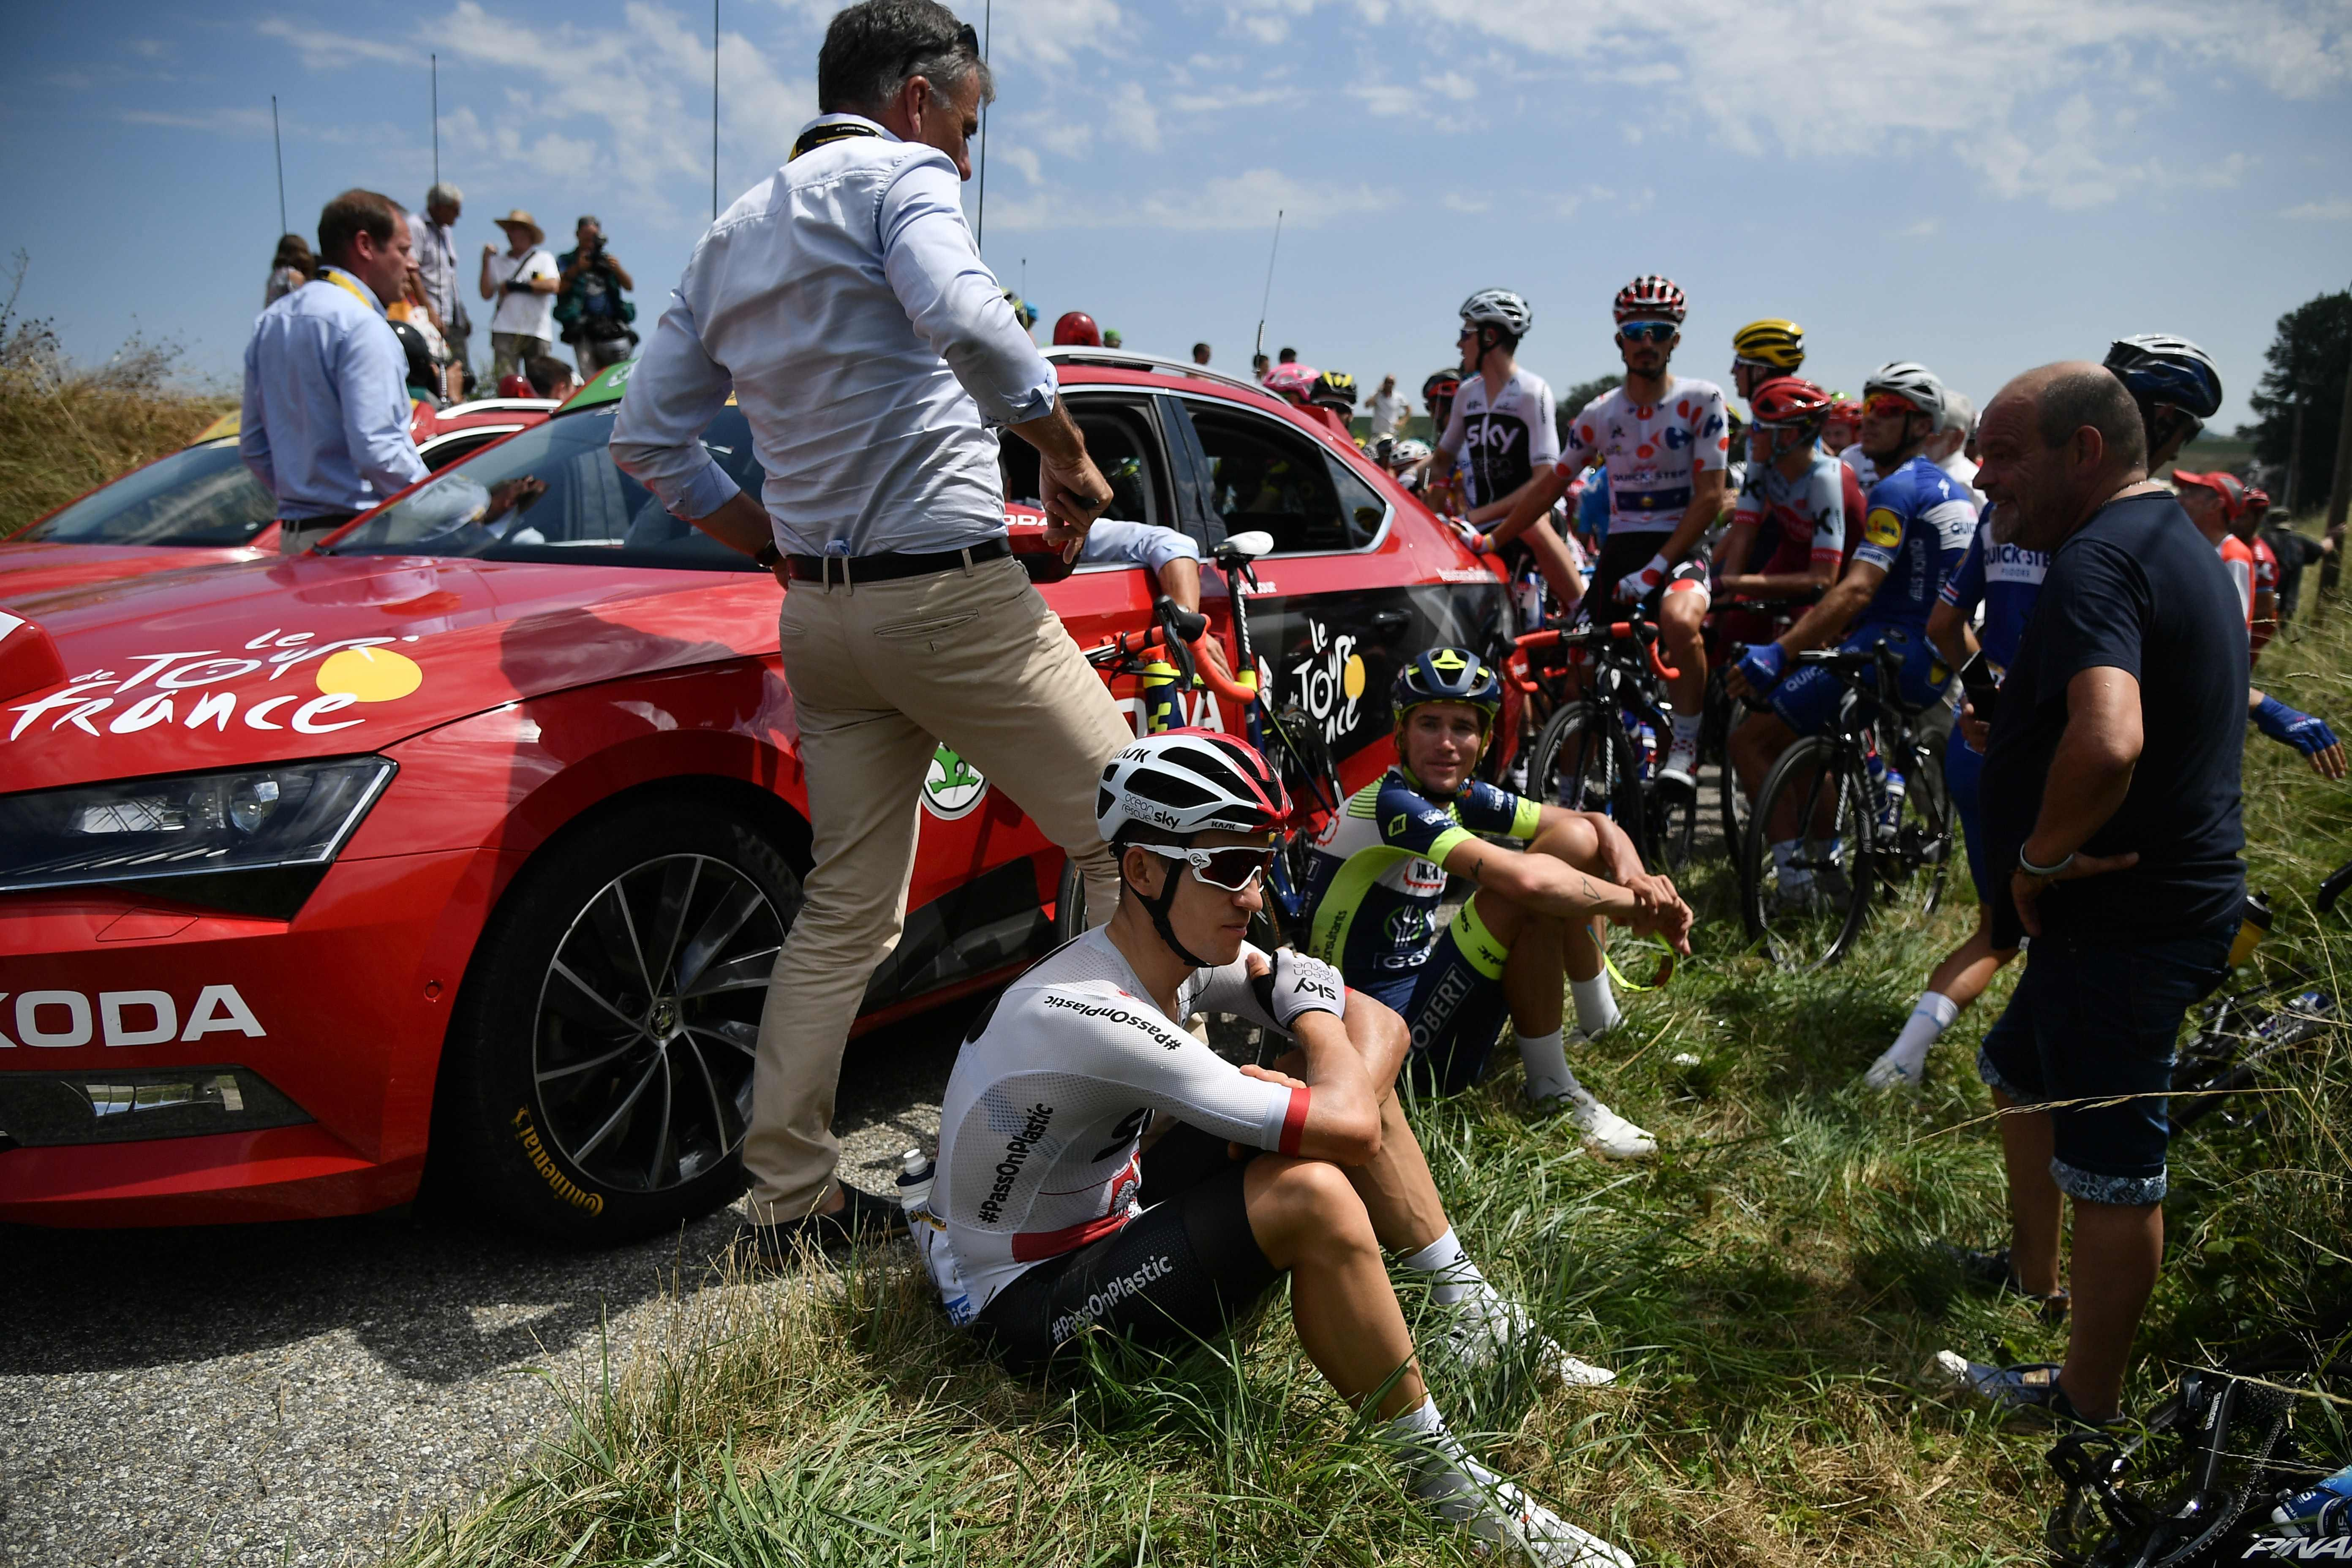 Sky rider Michal Kwiatkowski sits down on the side of the road after the incident